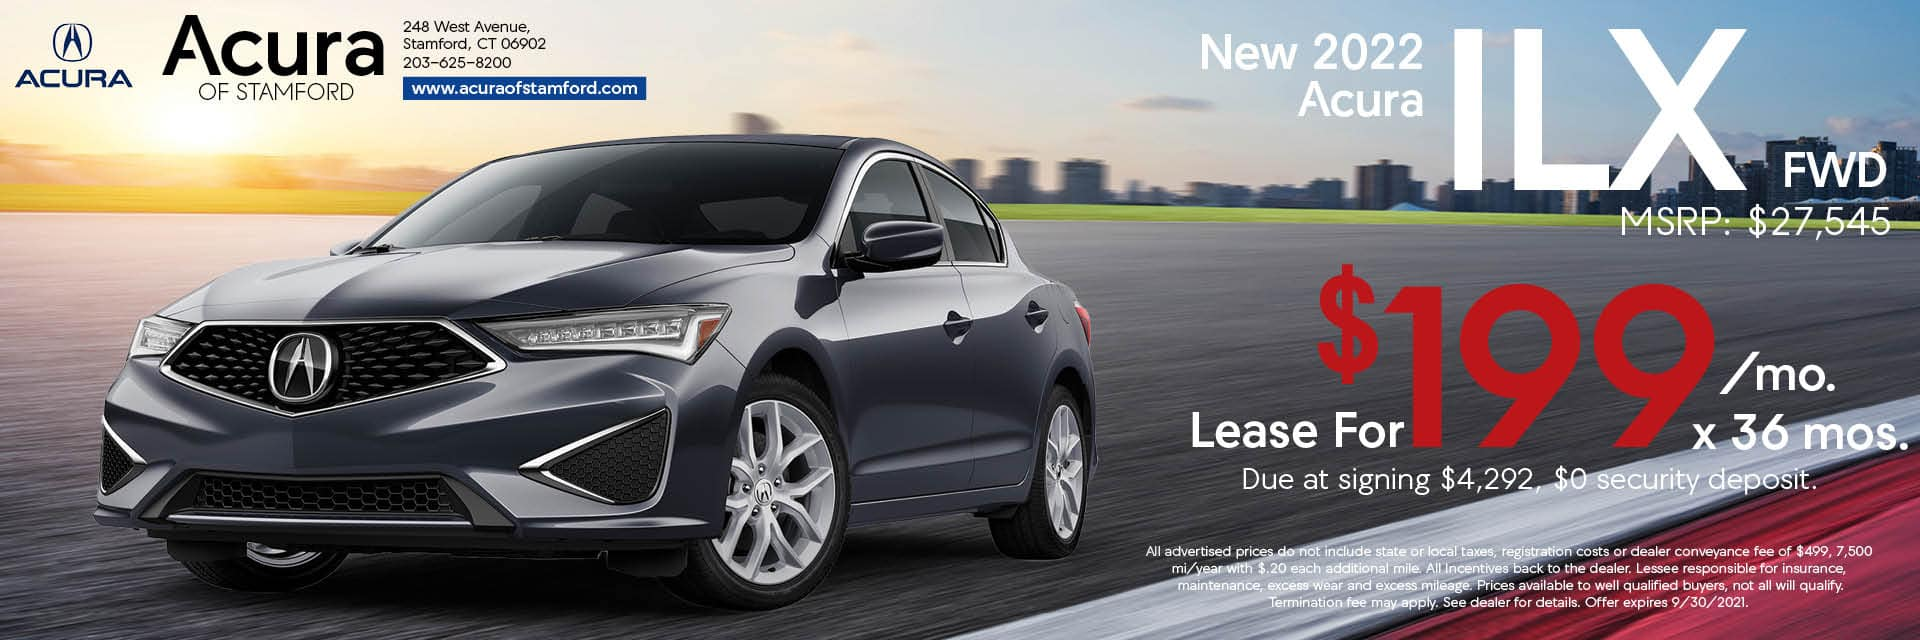 2022 Acura ILX Lease Offer | Acura of Stamford